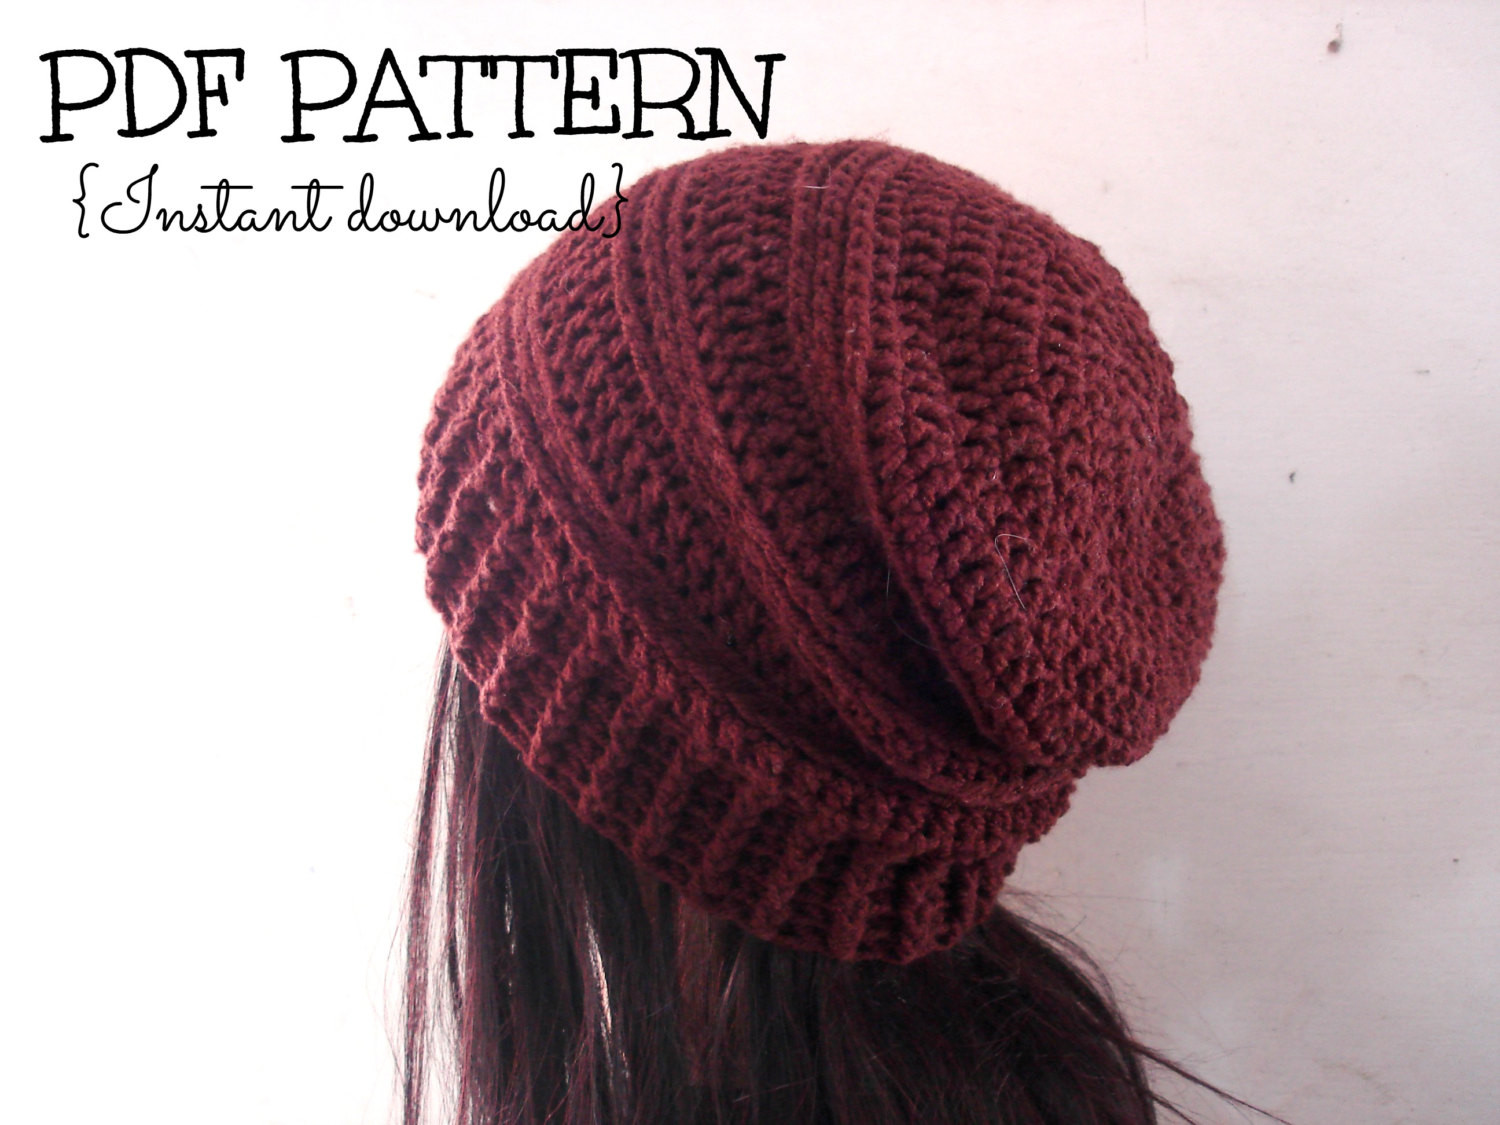 Awesome Crochet Adult Hat Pattern Crochet Hat Patterns for Adults Of Fresh Give A Hoot Crocheted Hat Free Pattern for Kids and Adult Crochet Hat Patterns for Adults